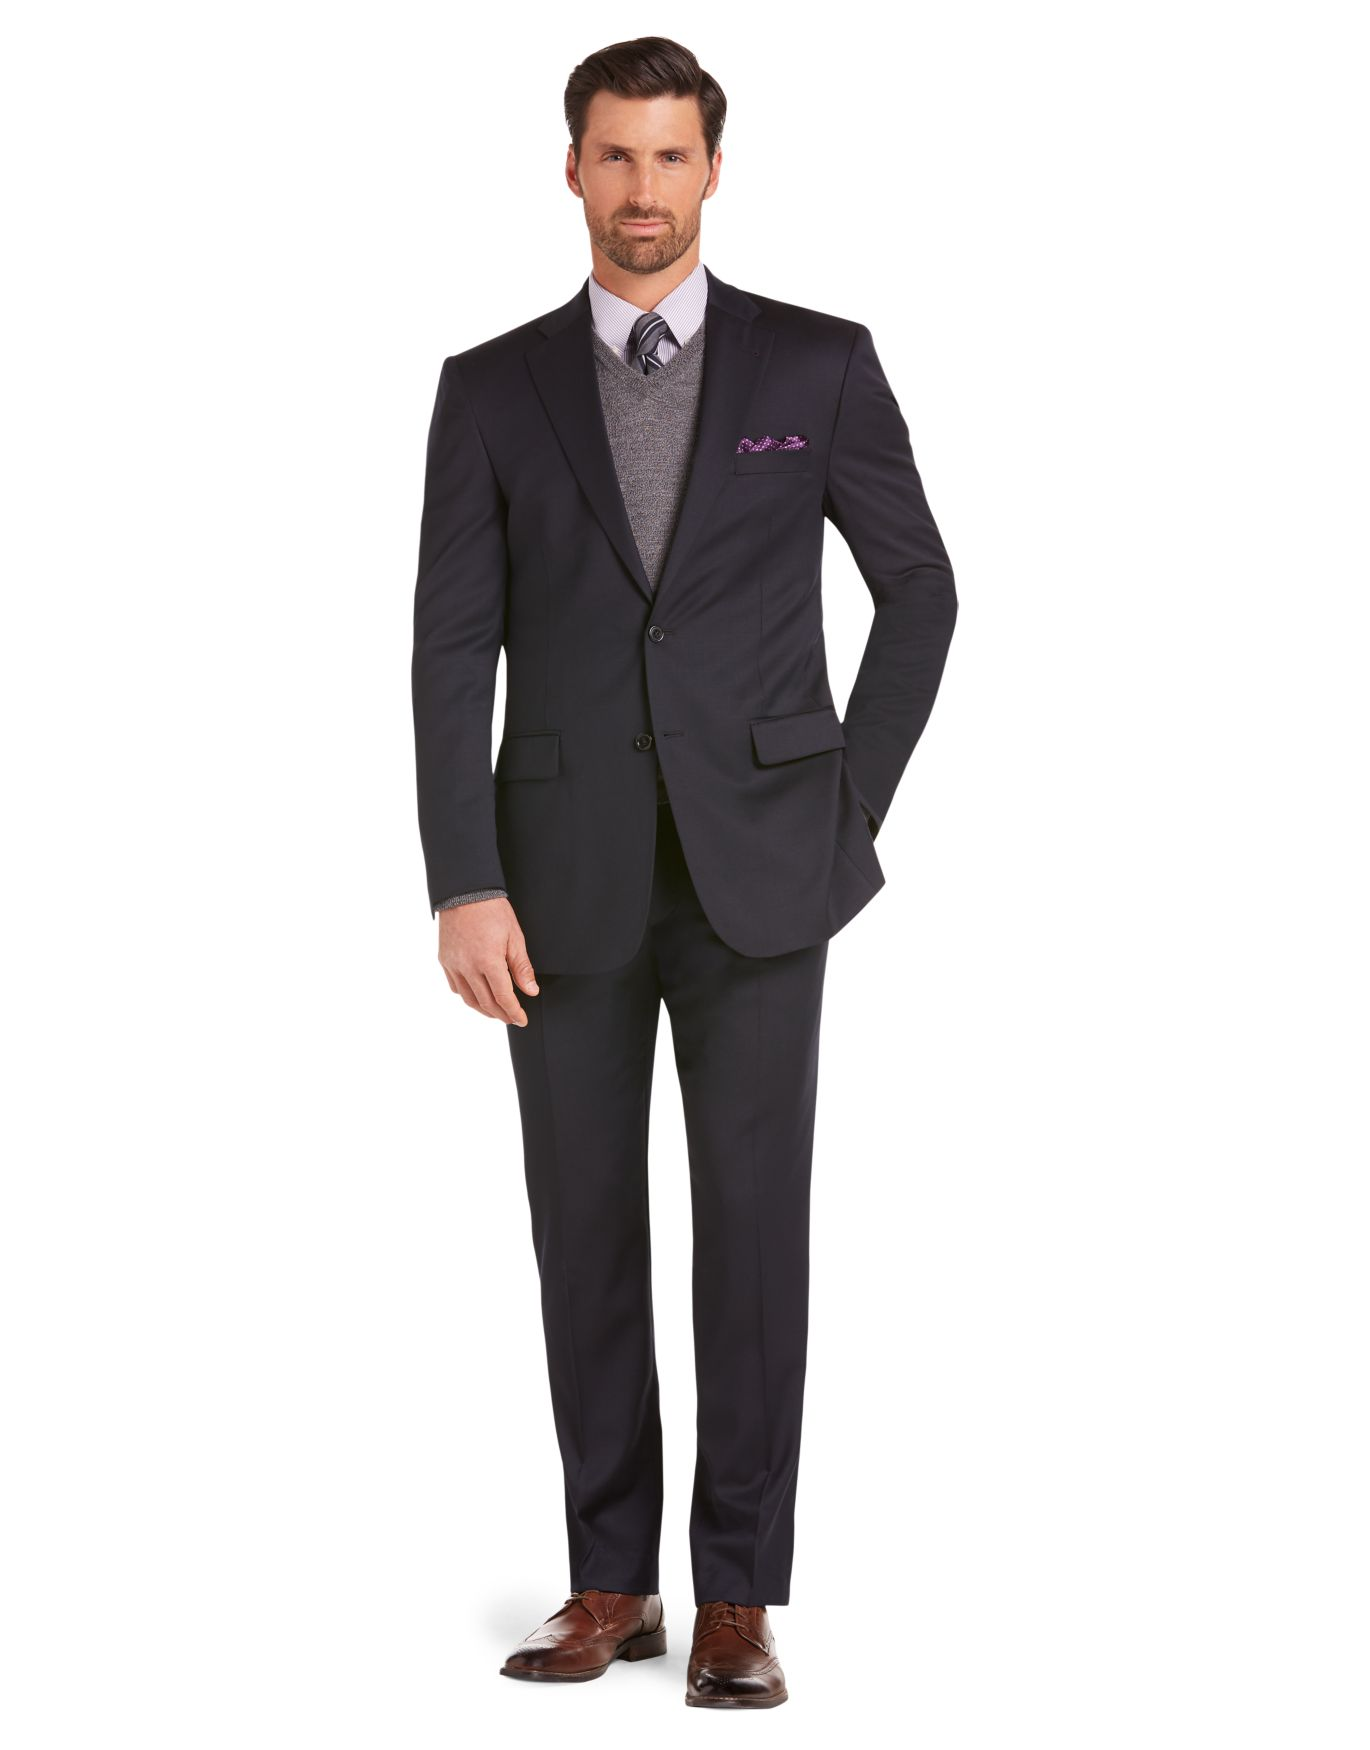 Signature Collection Tailored Fit Suit - Signature Suits | Jos A Bank